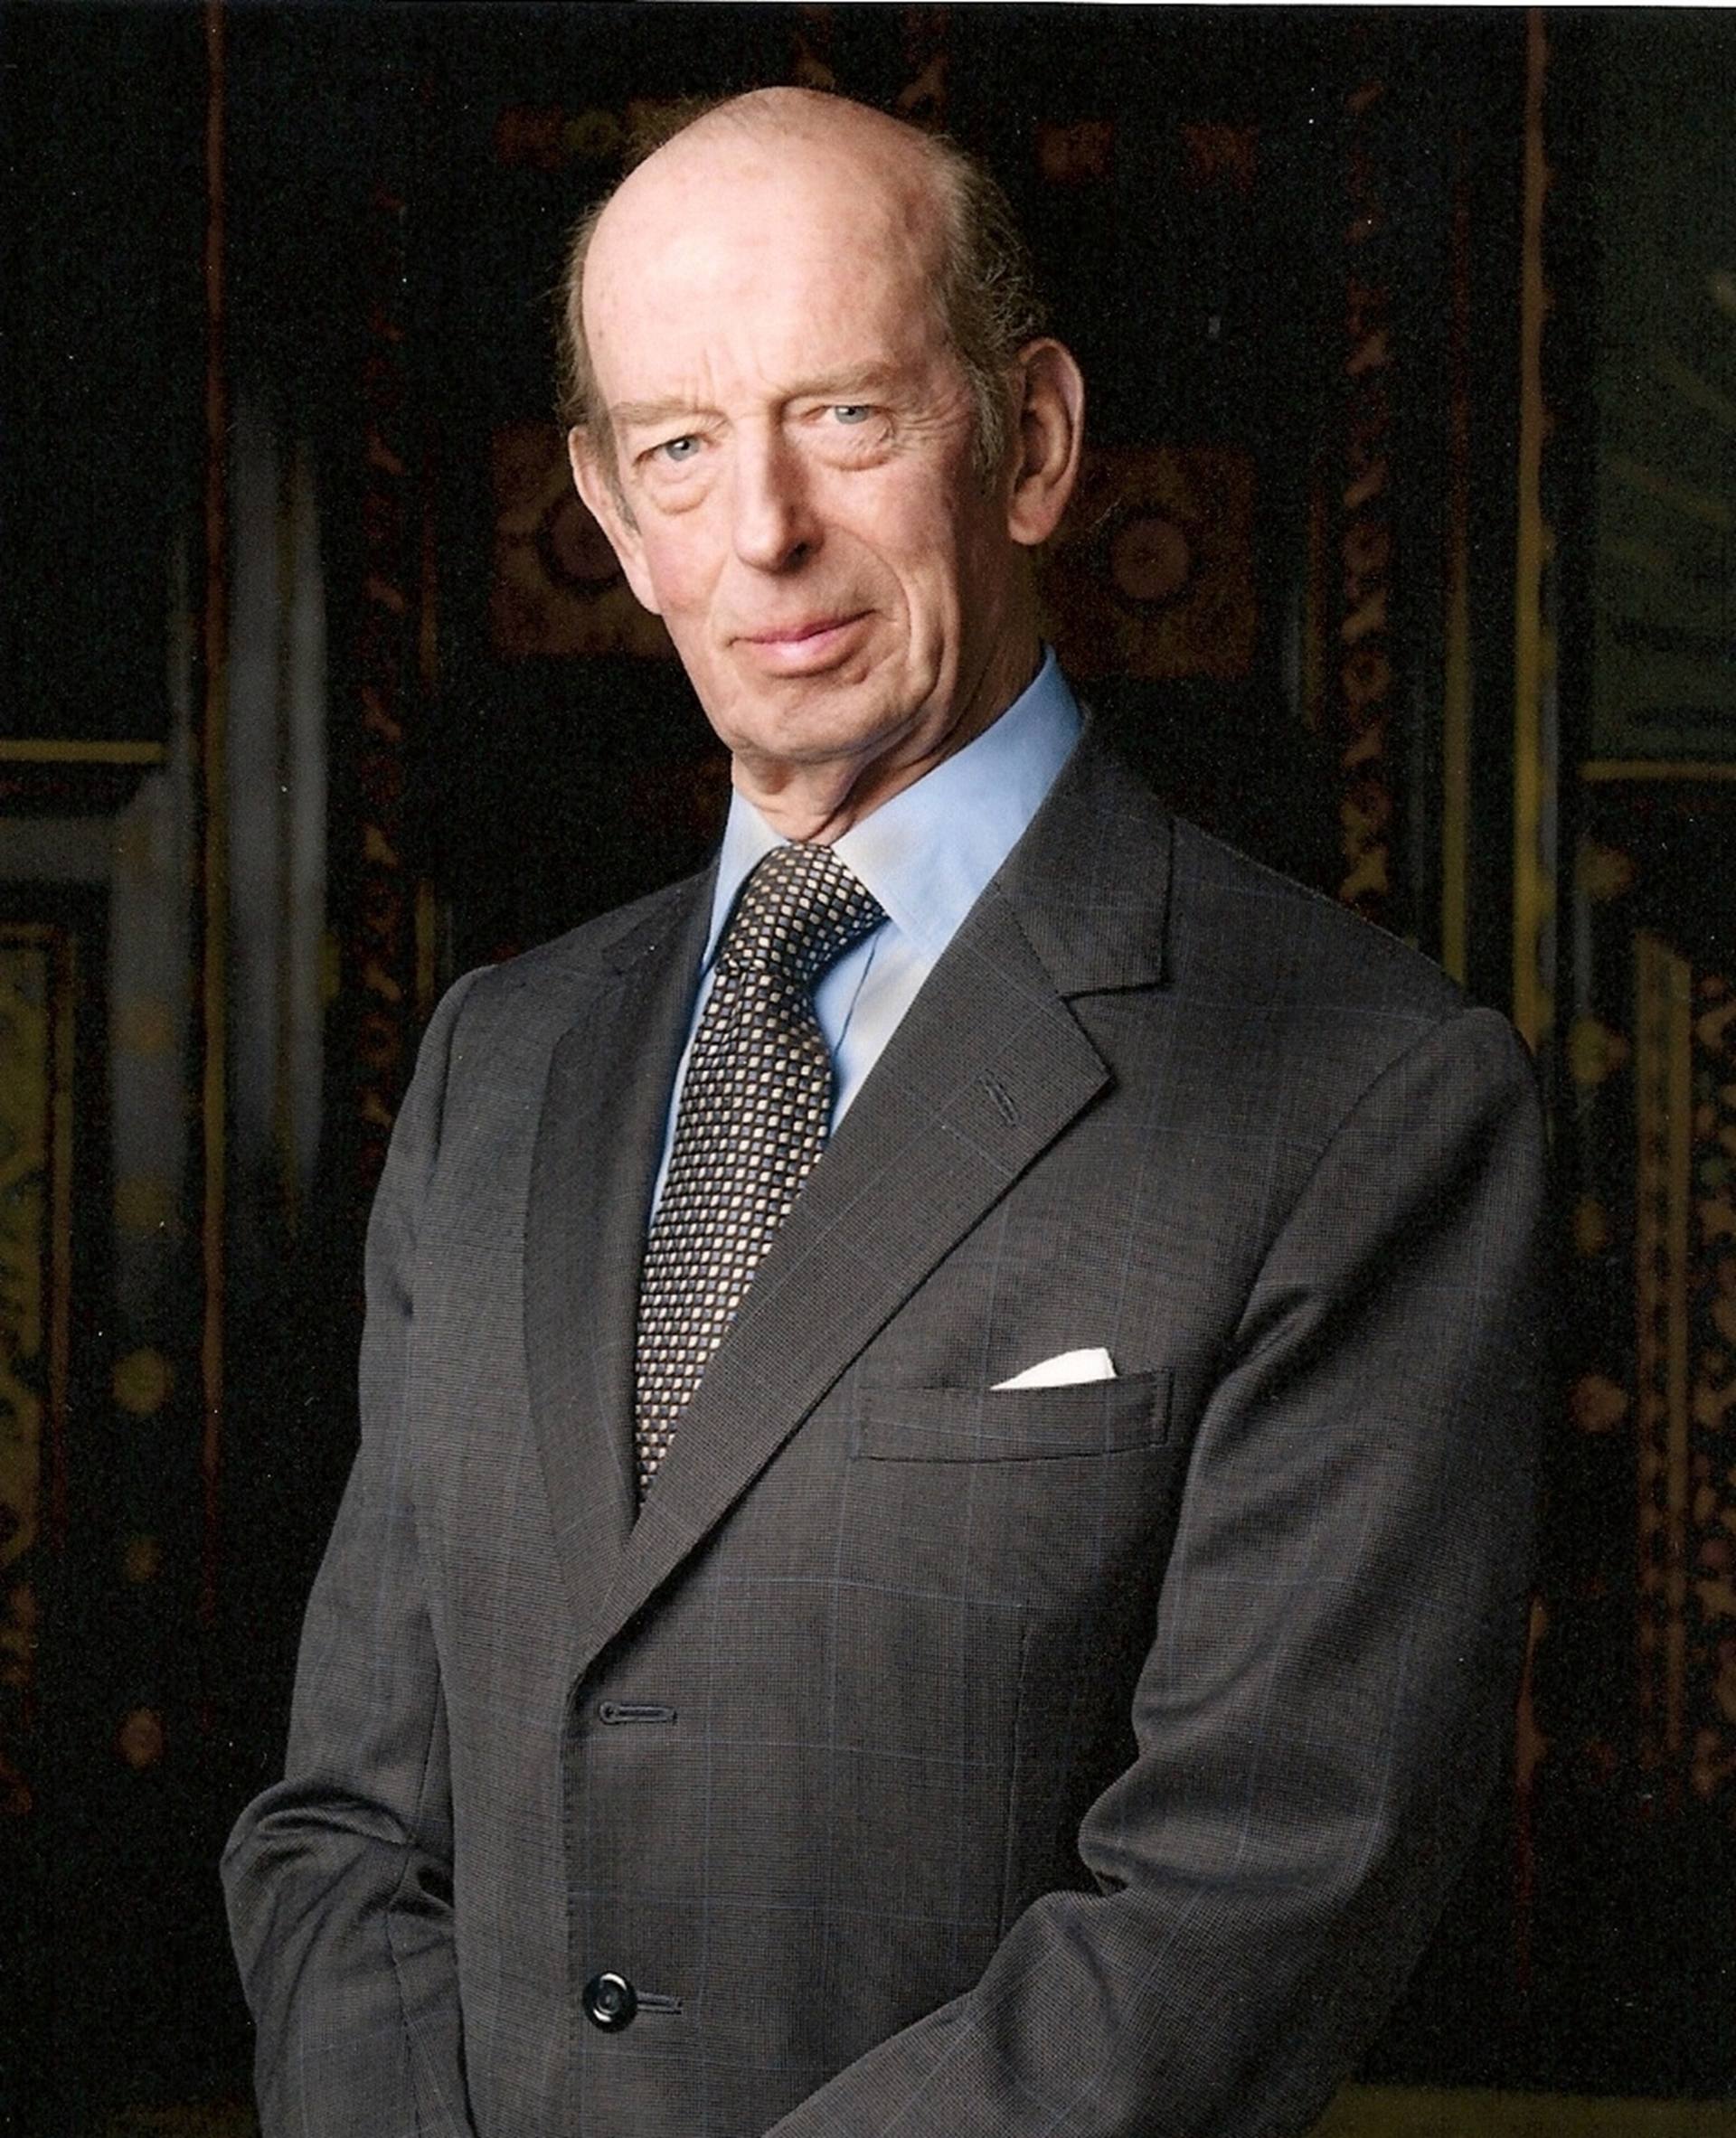 The Duke of Kent as Patron